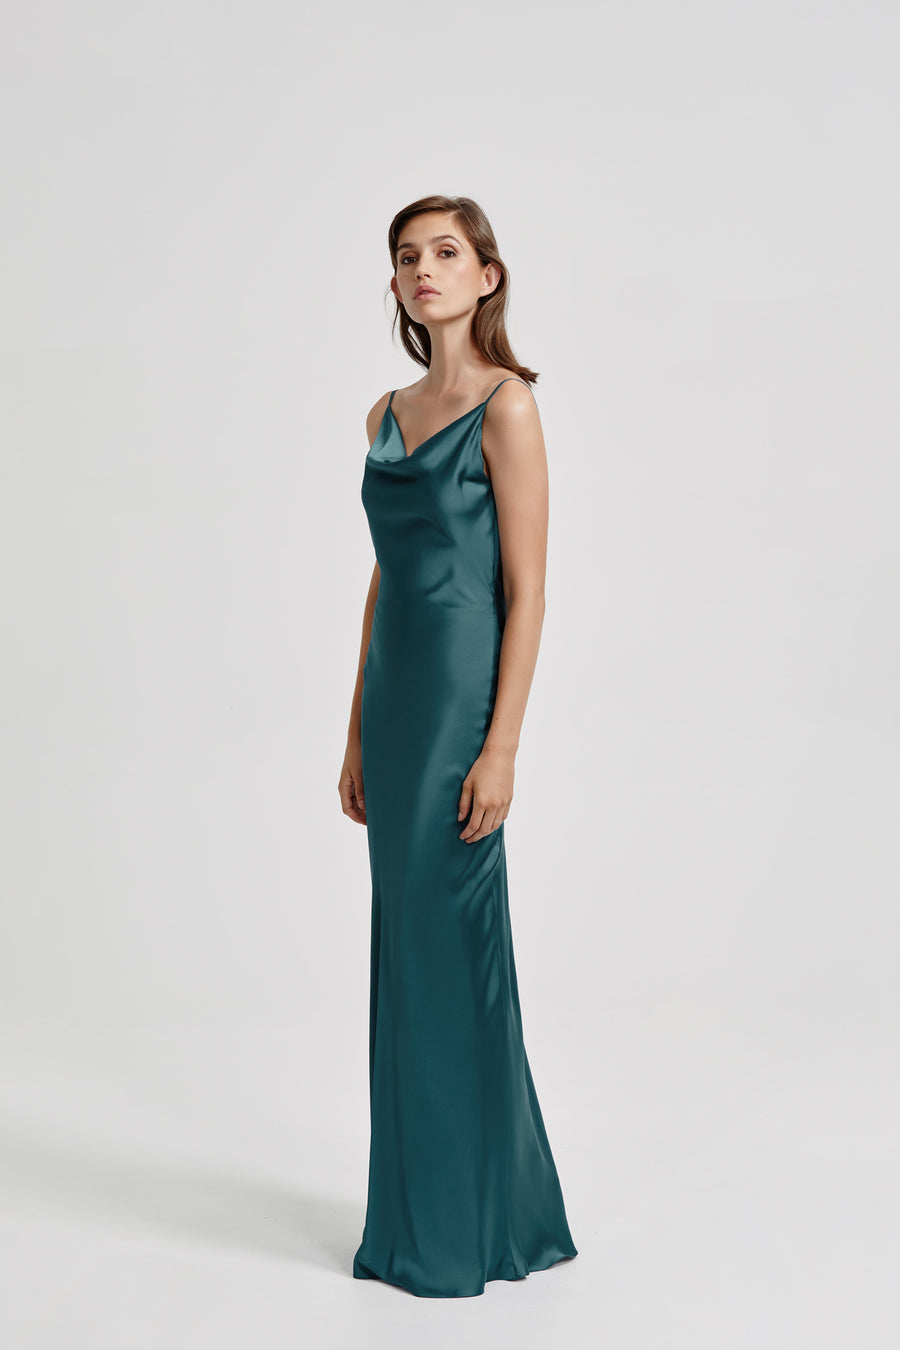 Zamora Dress - Teal